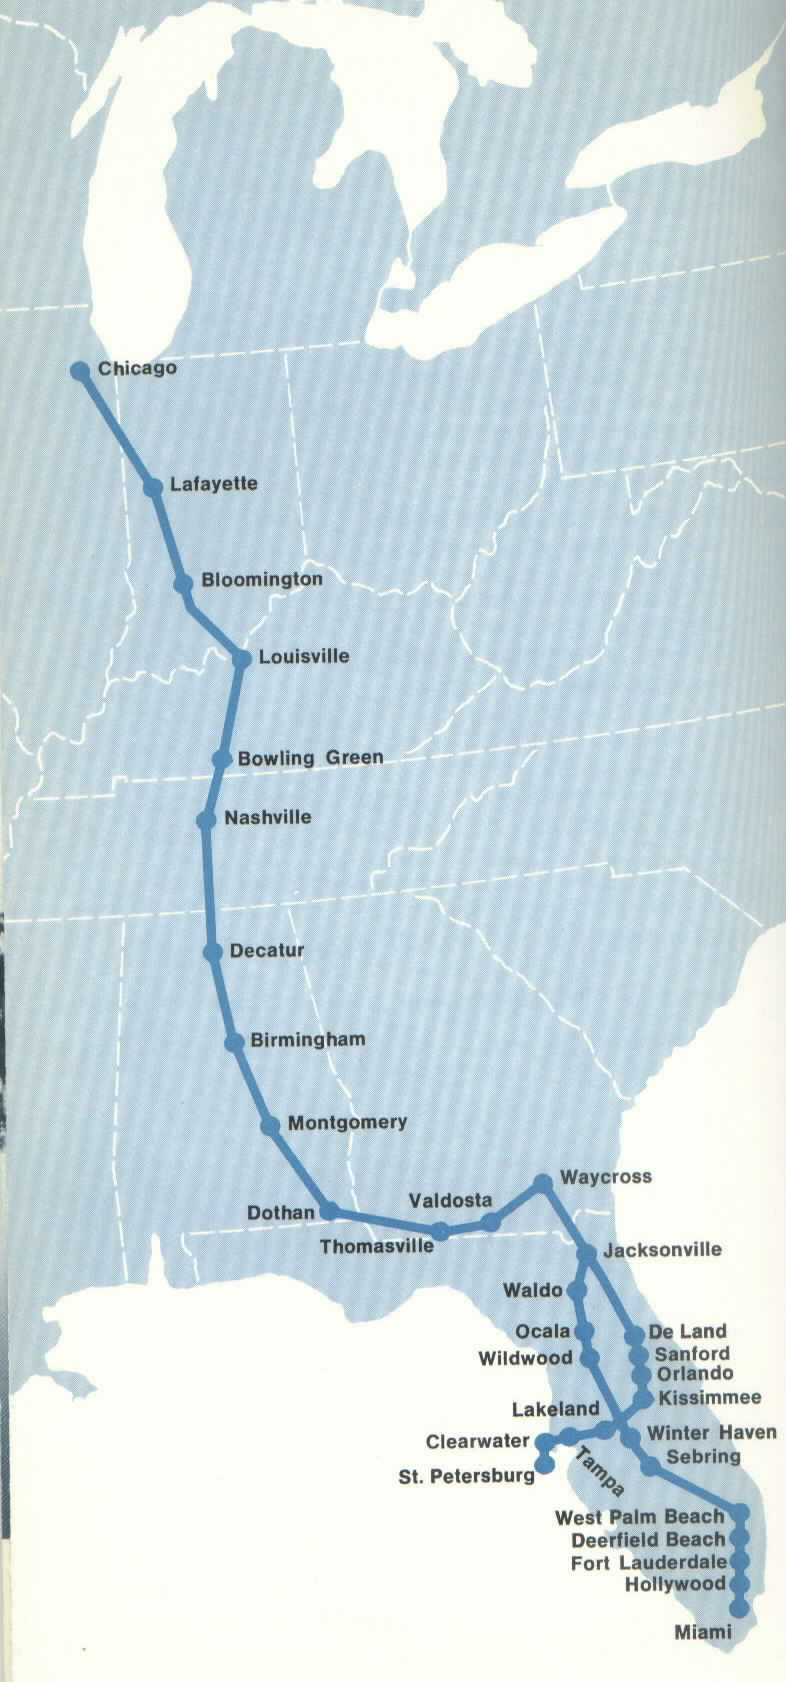 ChicagoFlorida Amtrak Route Trains Magazine Trains News Wire - Chicago amtrak map